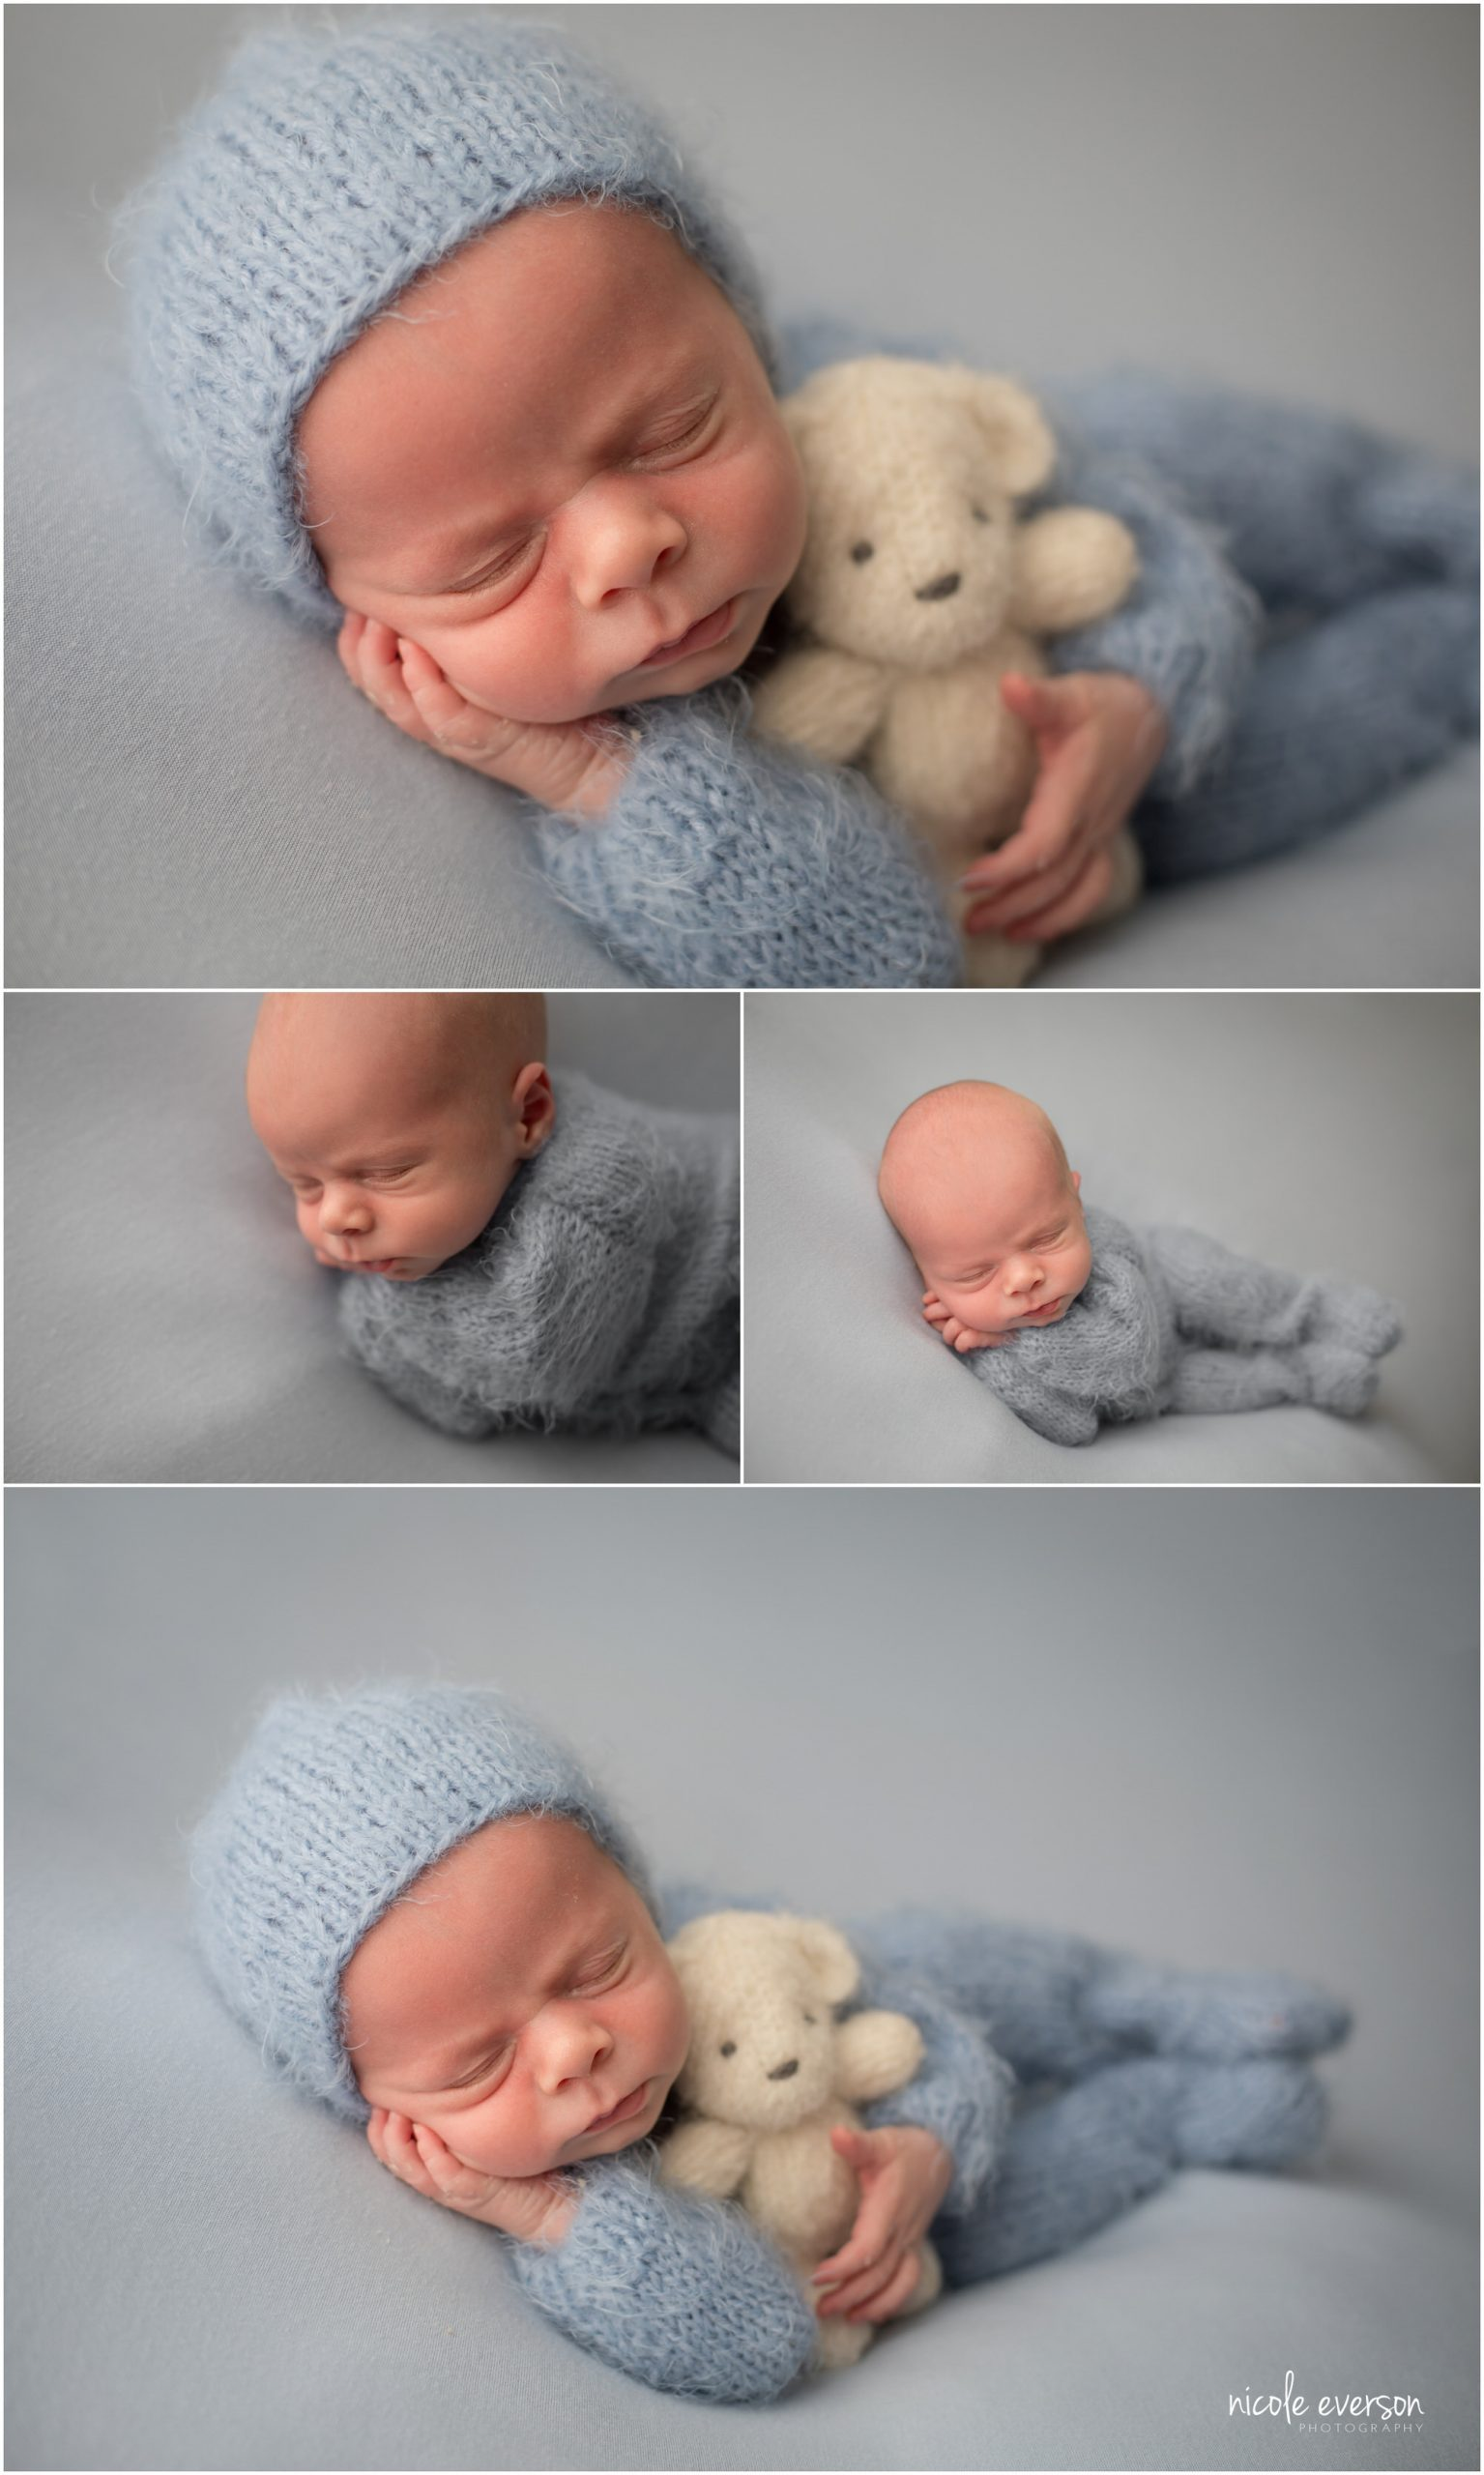 newborn photos by Nicole Everson Photography